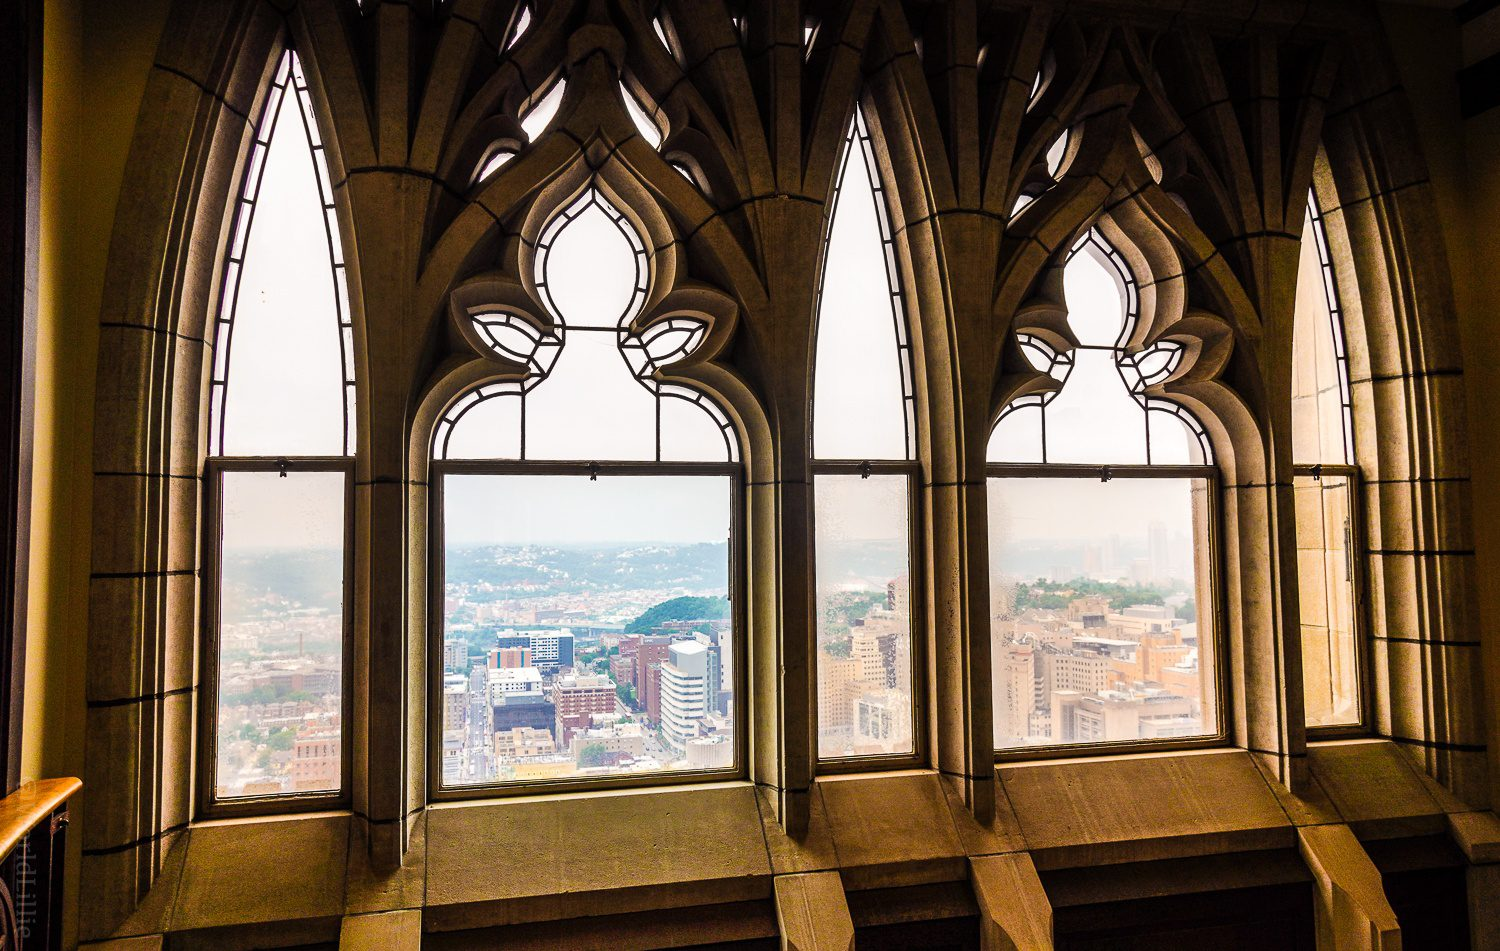 Windows at the upper floors of the Cathedral of Learning.